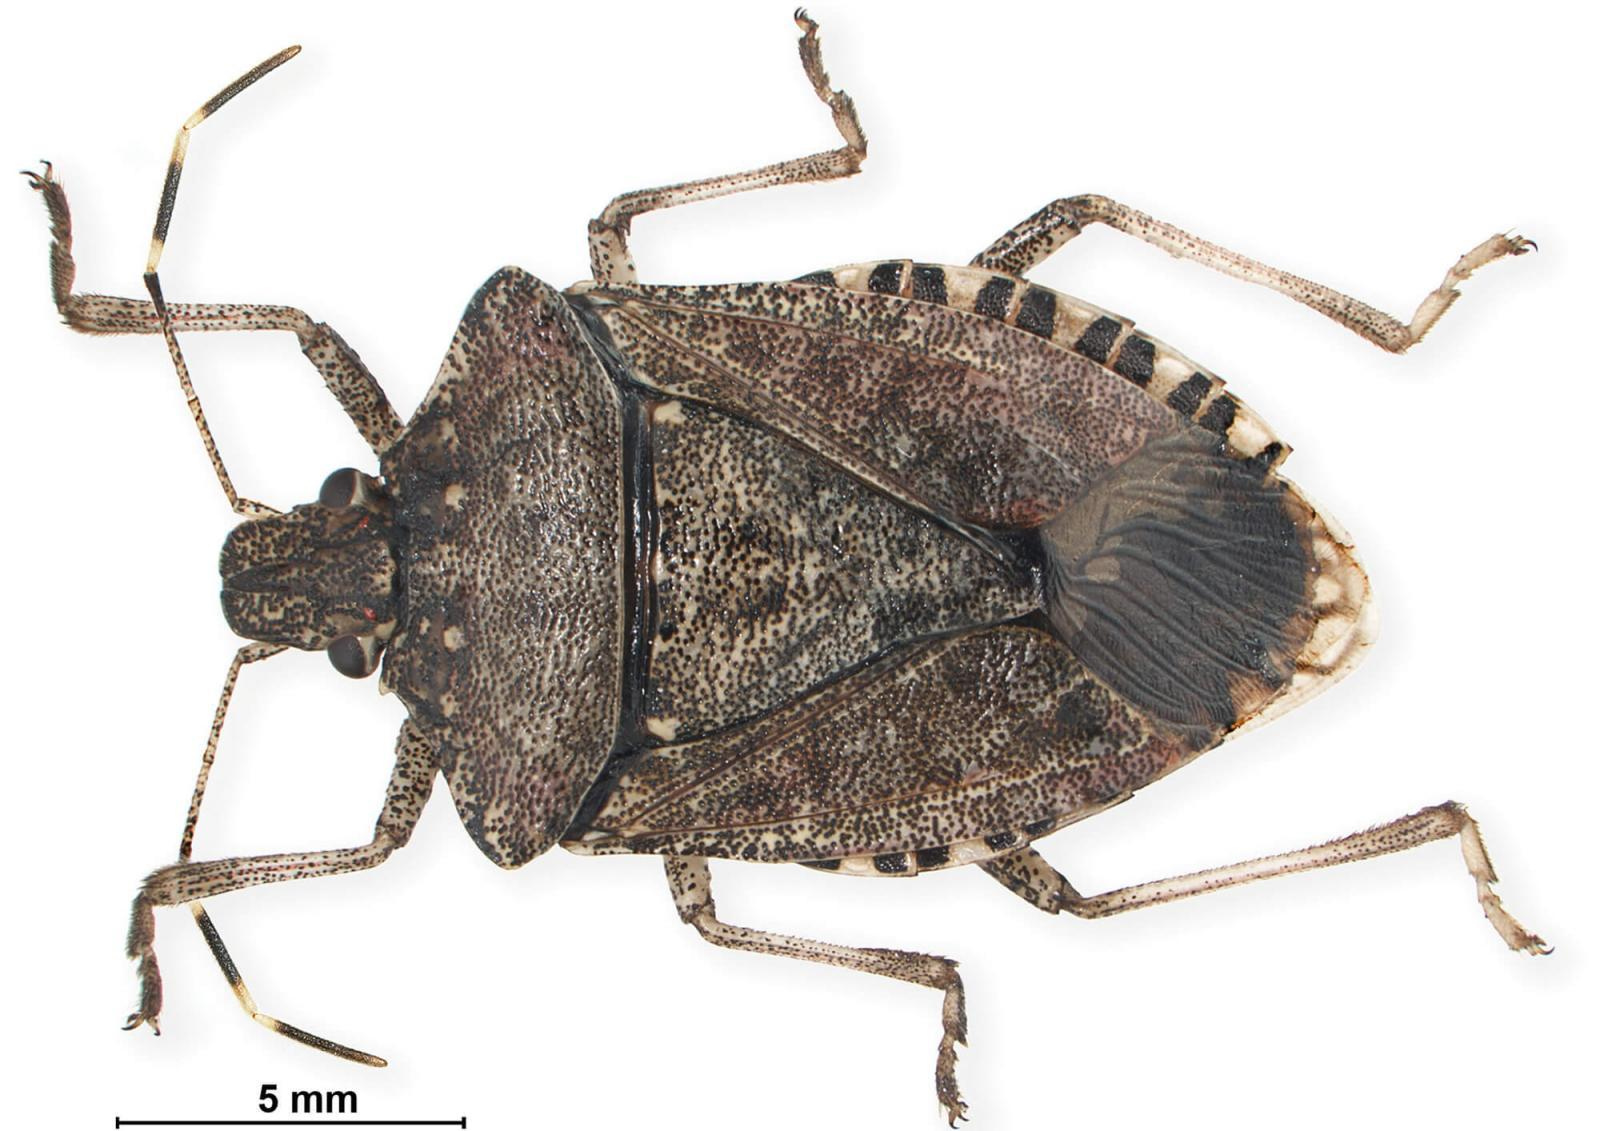 Survey to determine spread of stink bug